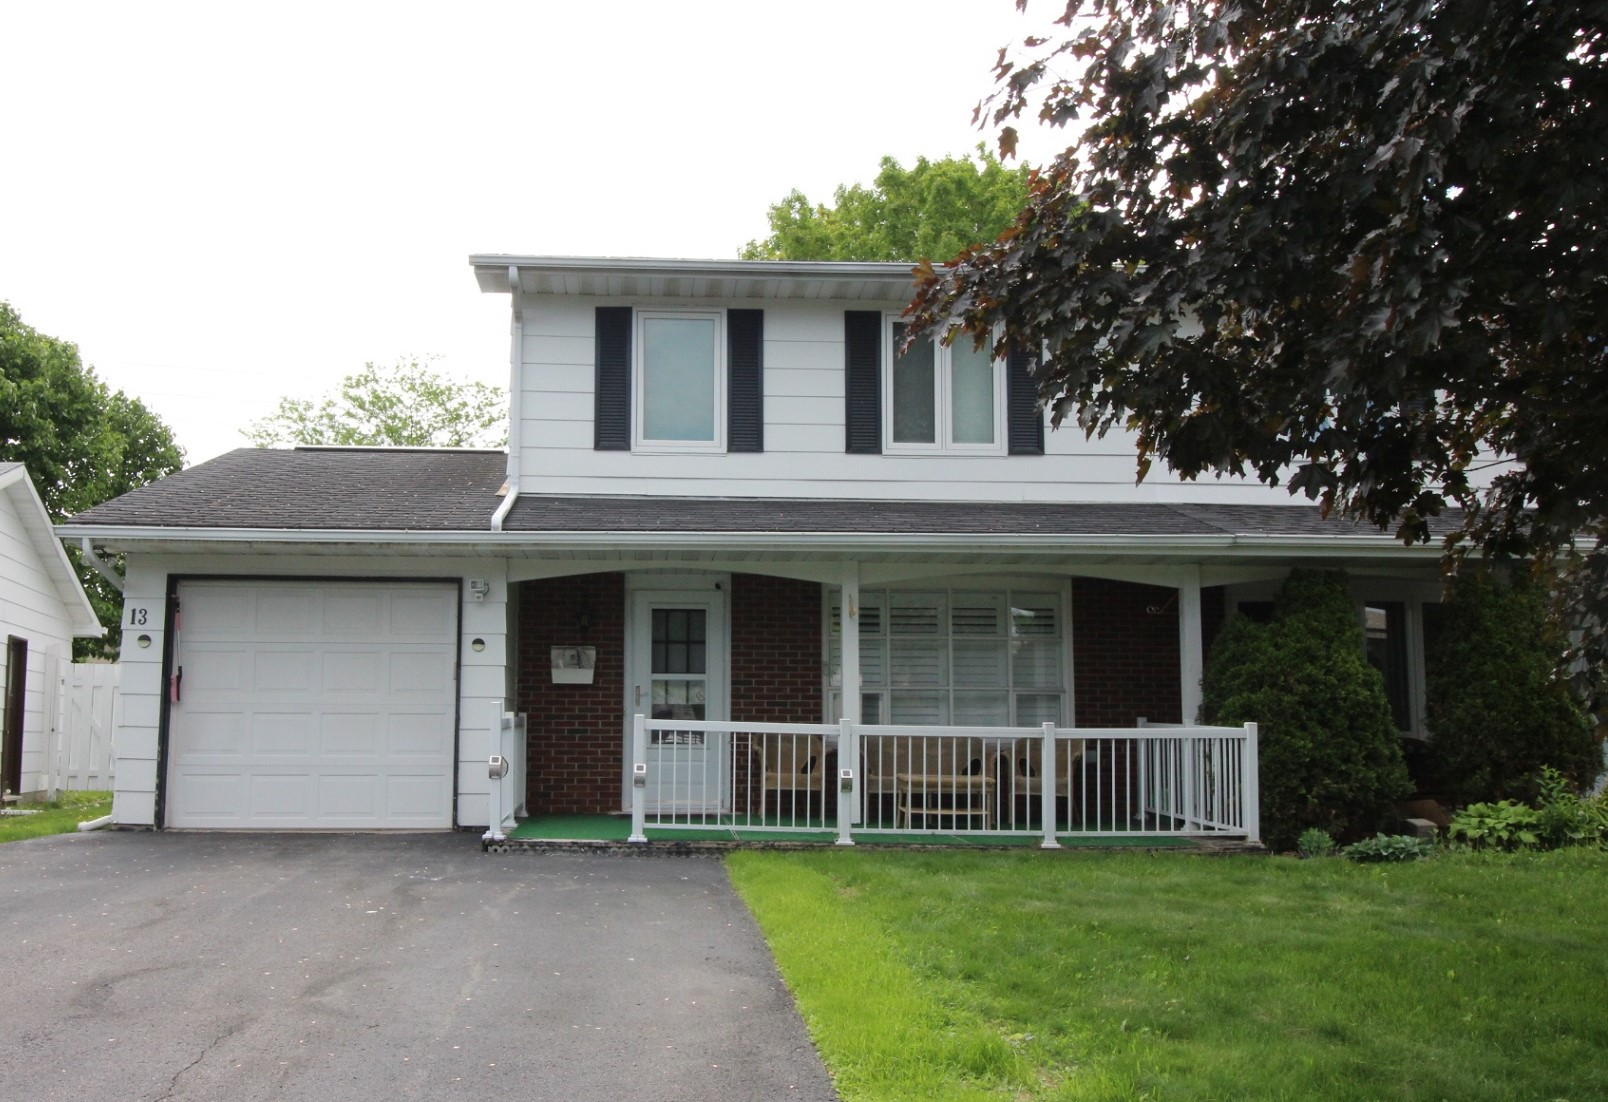 13 Bainbridge Ave - 4 Bedroom Semi-Detached Home in sought after Craig Henry area!